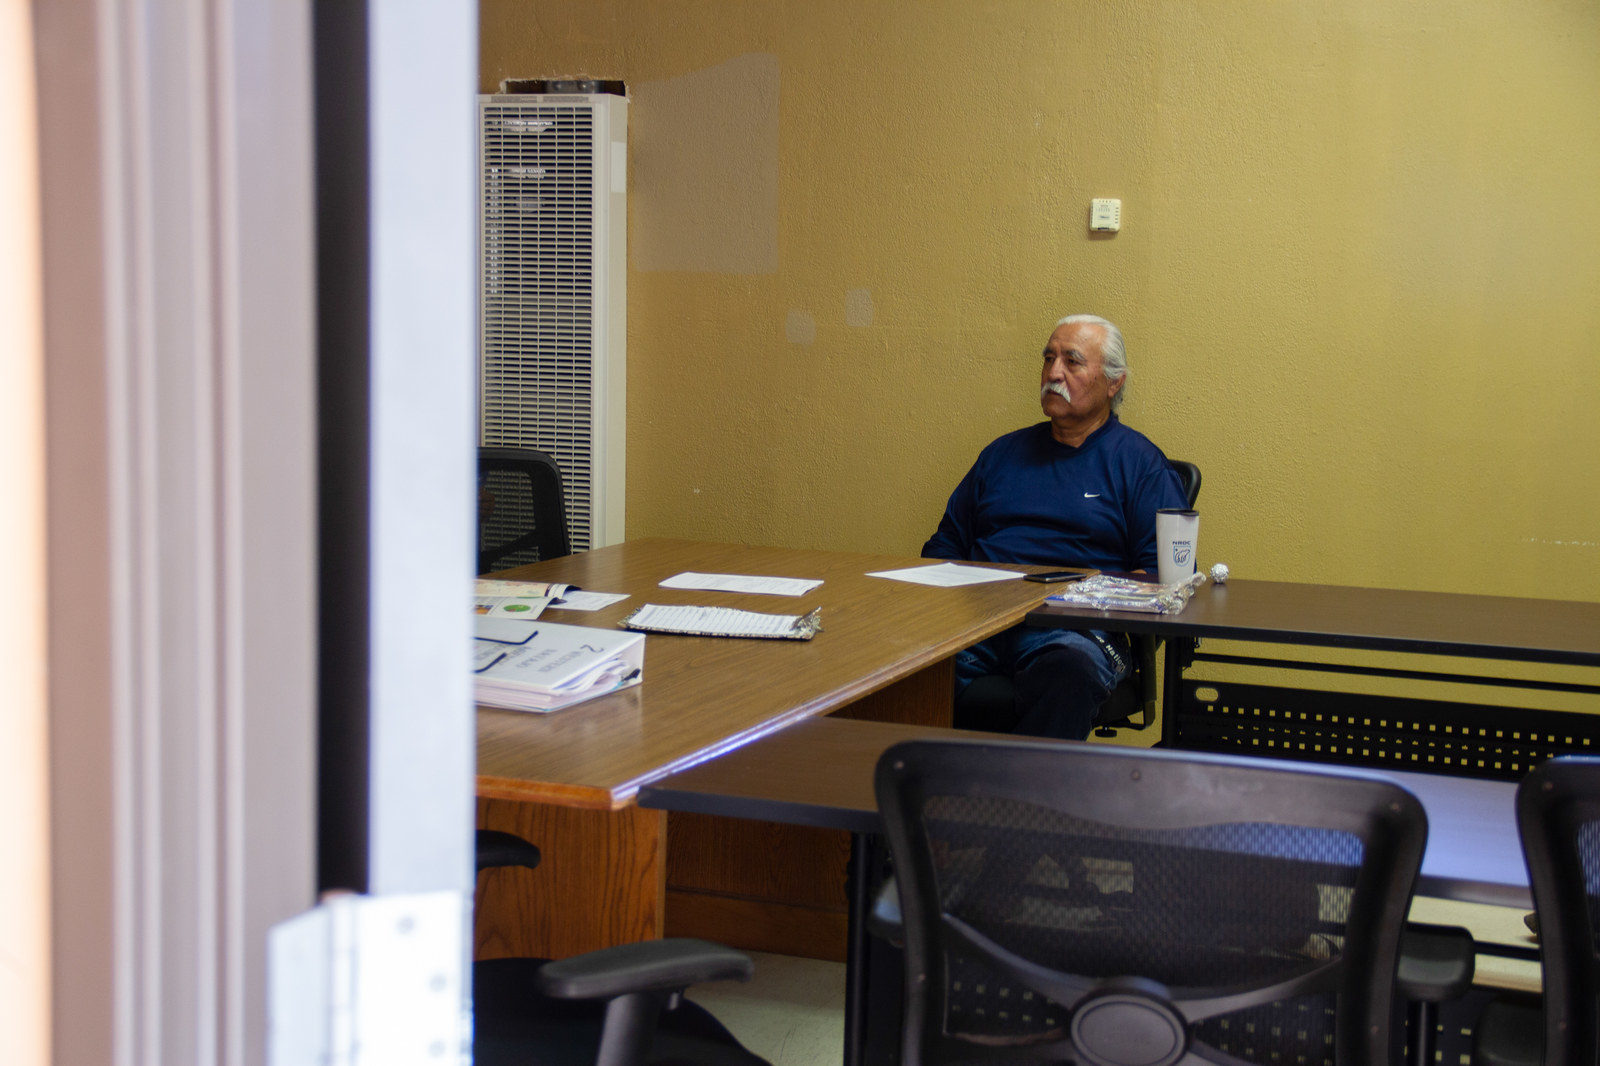 Willie Grayeyes, county commissioner candidate, at Shonto Chapter House in Shonto, Arizona.